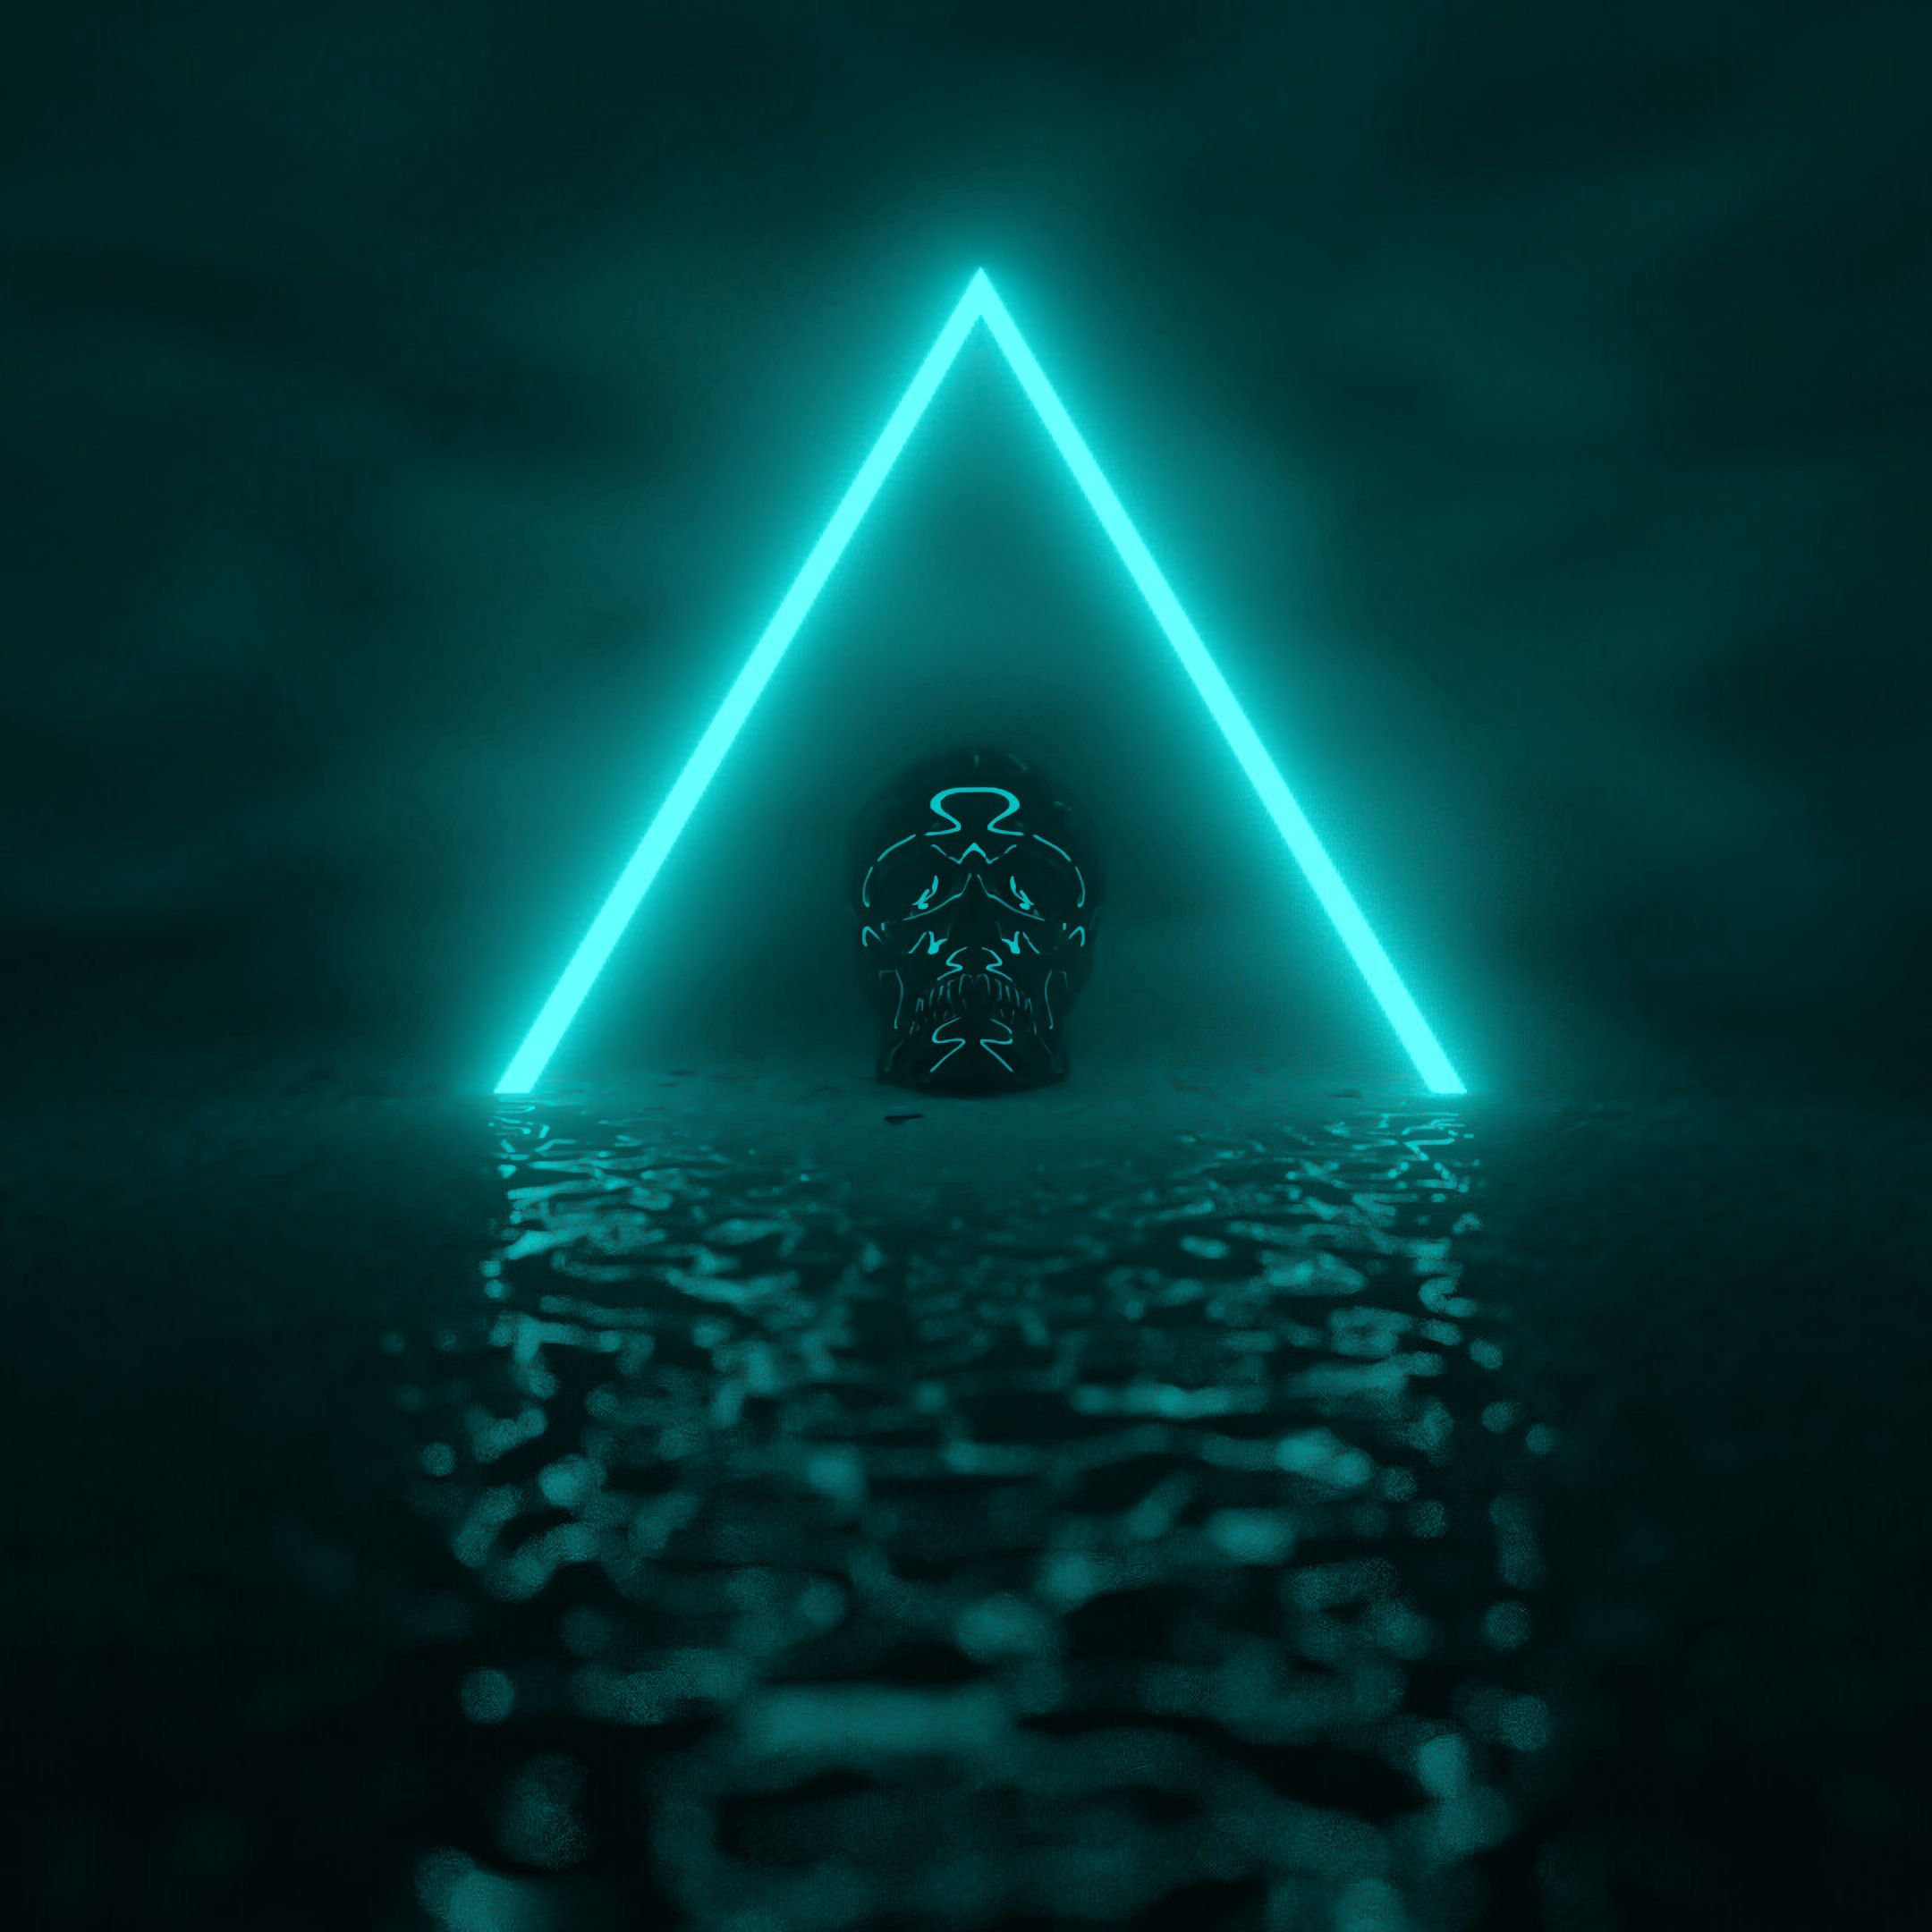 145626 download wallpaper Dark, Neon, Glow, Skull, Triangle screensavers and pictures for free